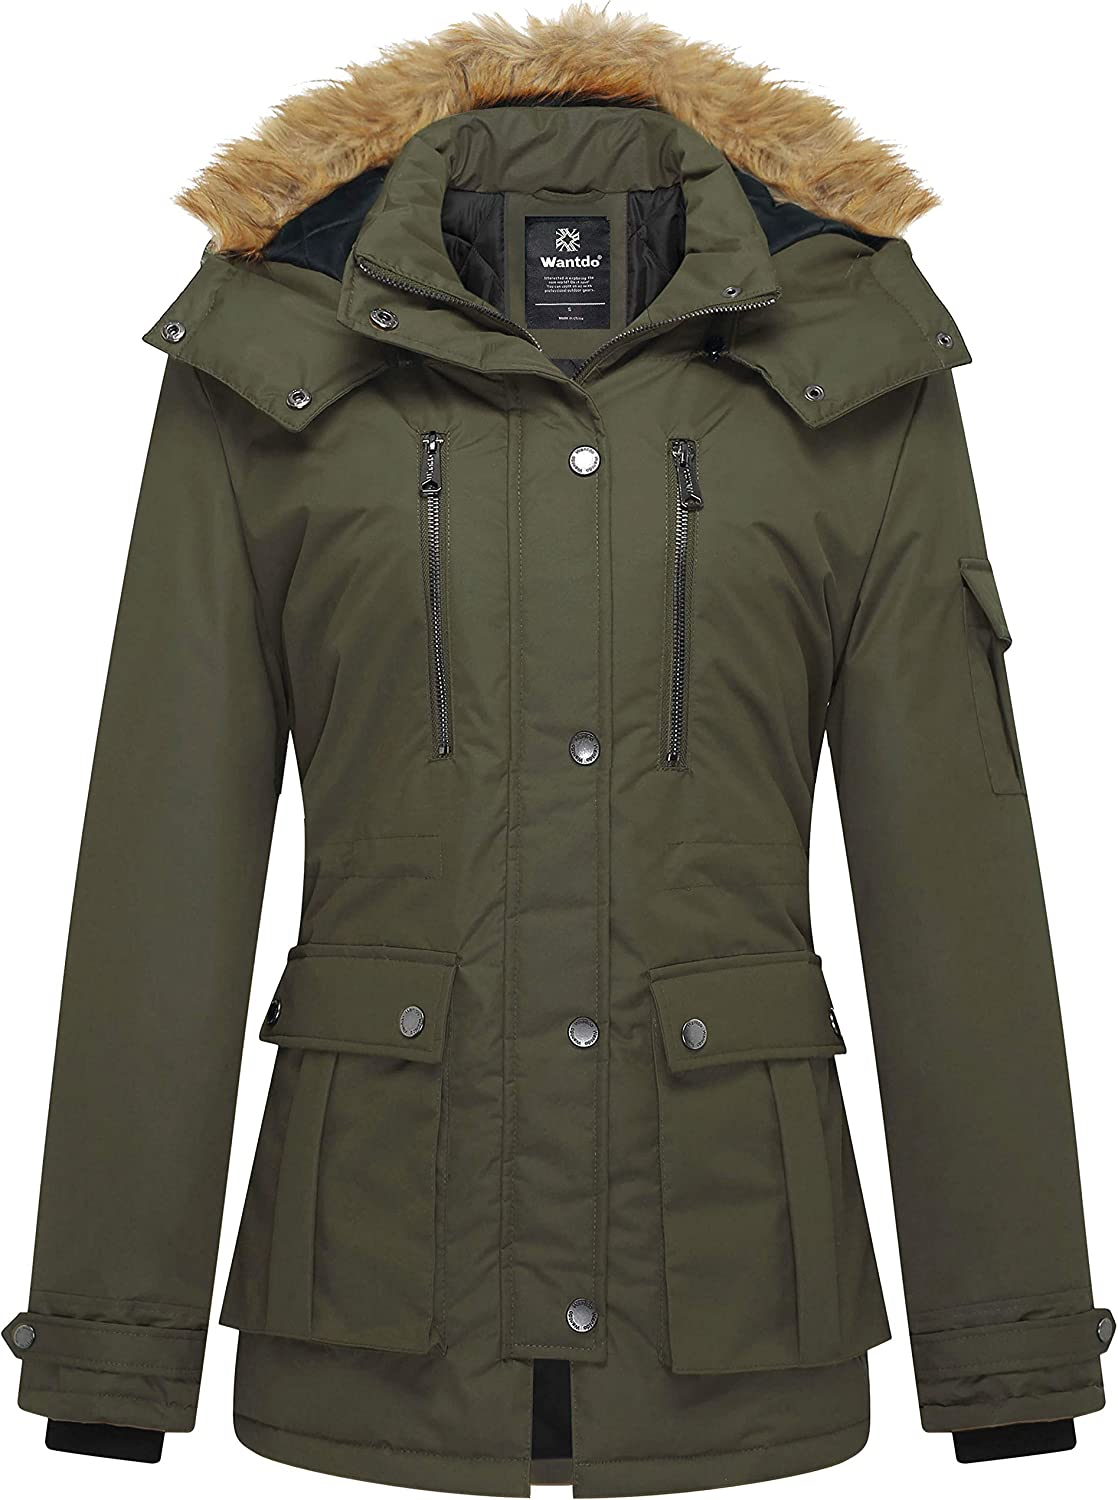 Where To Buy A Parka Jacket